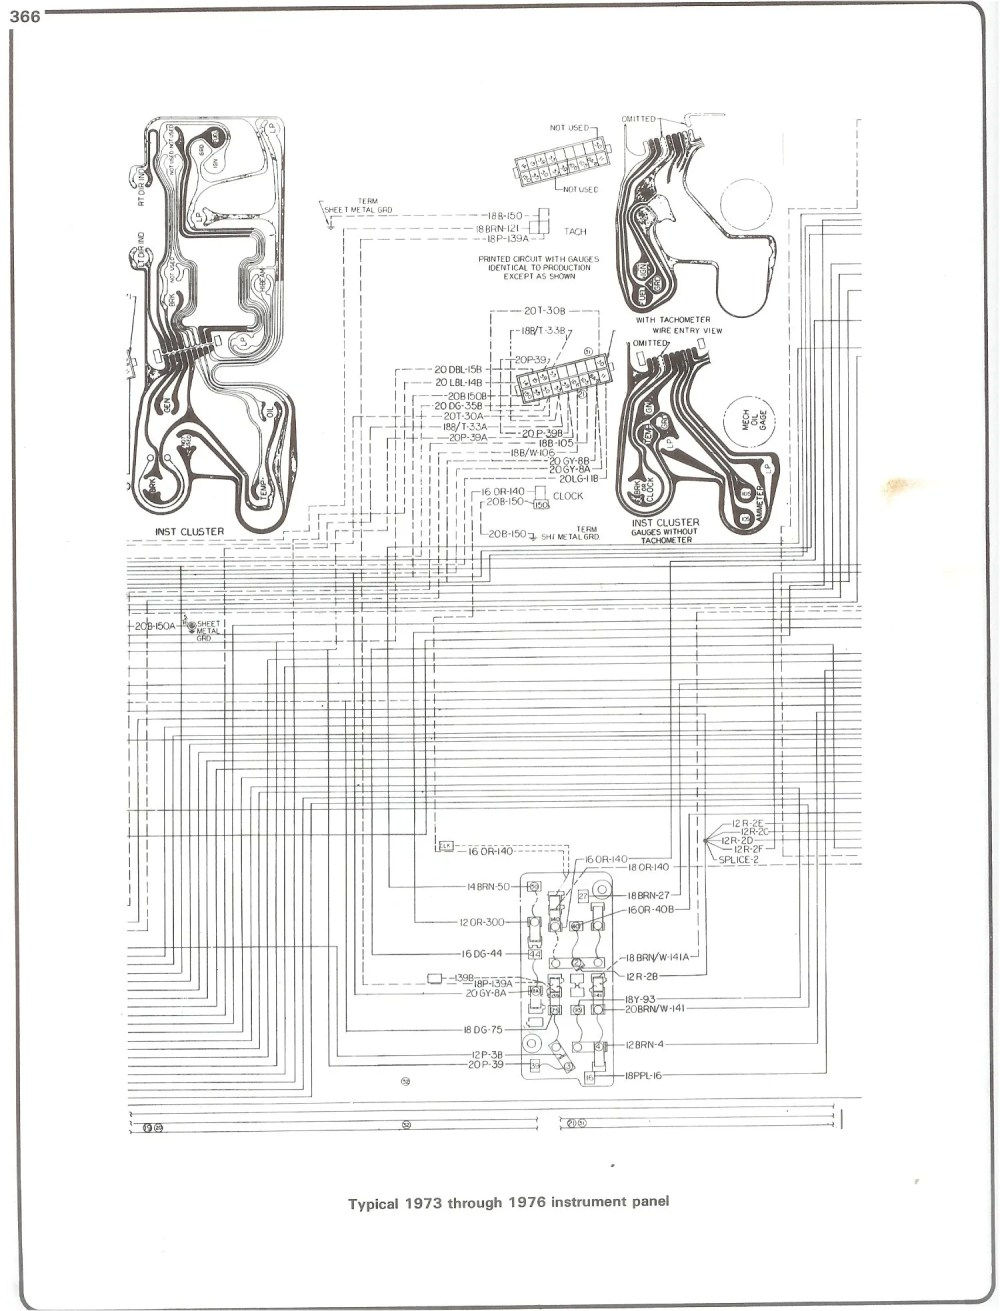 medium resolution of complete 73 87 wiring diagrams 73 87 chevy wiring harness